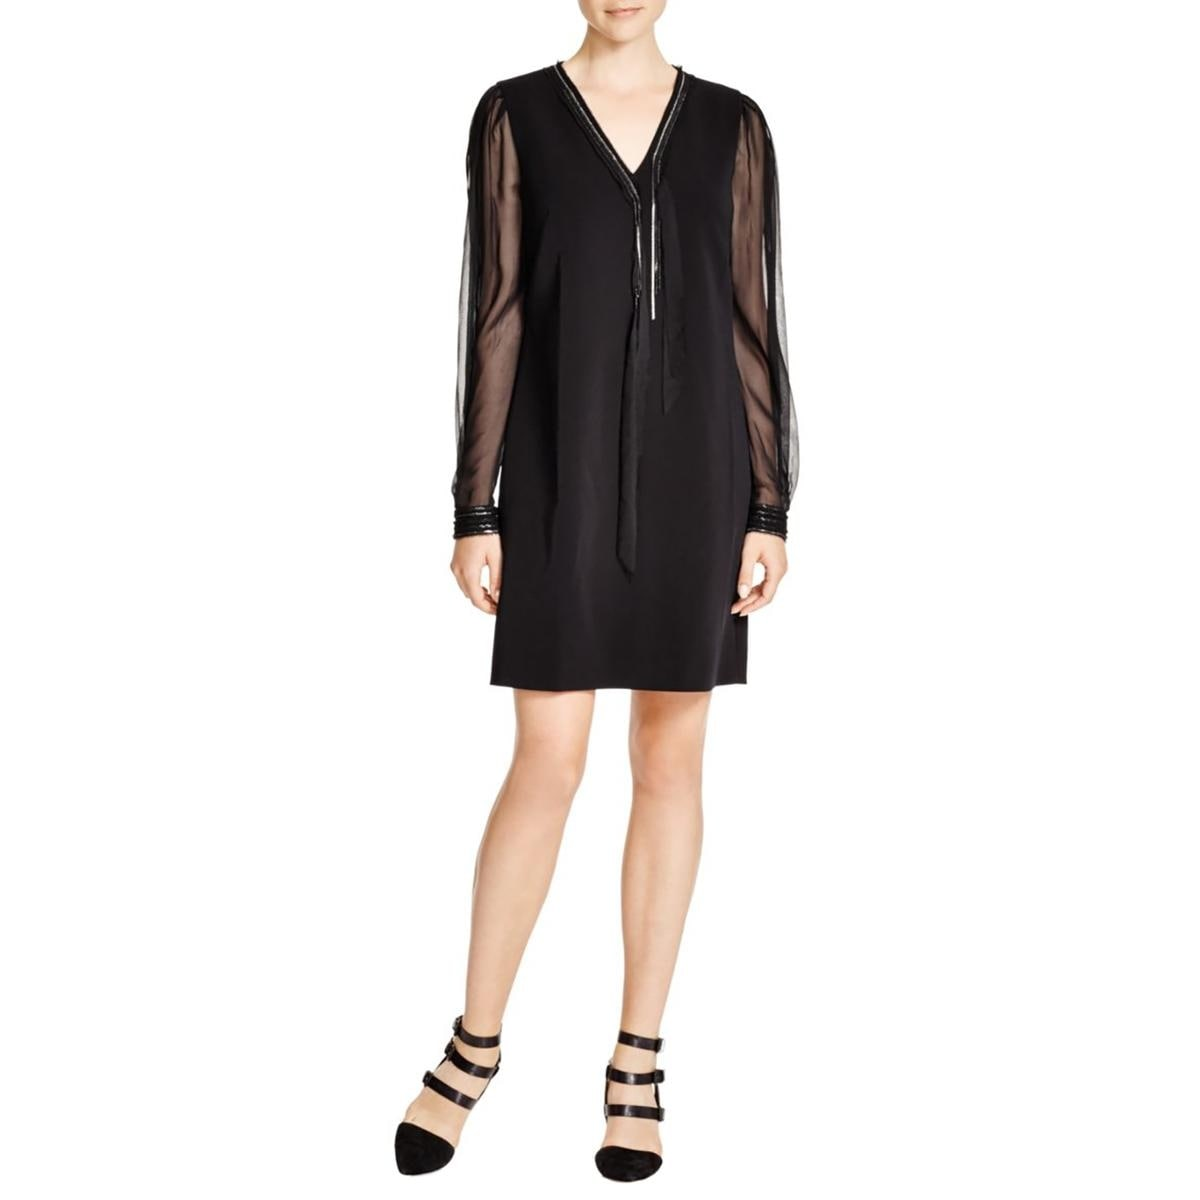 Elie Tahari Womens Pencey Cocktail Dress Silk Chain Trim - Thumbnail 0